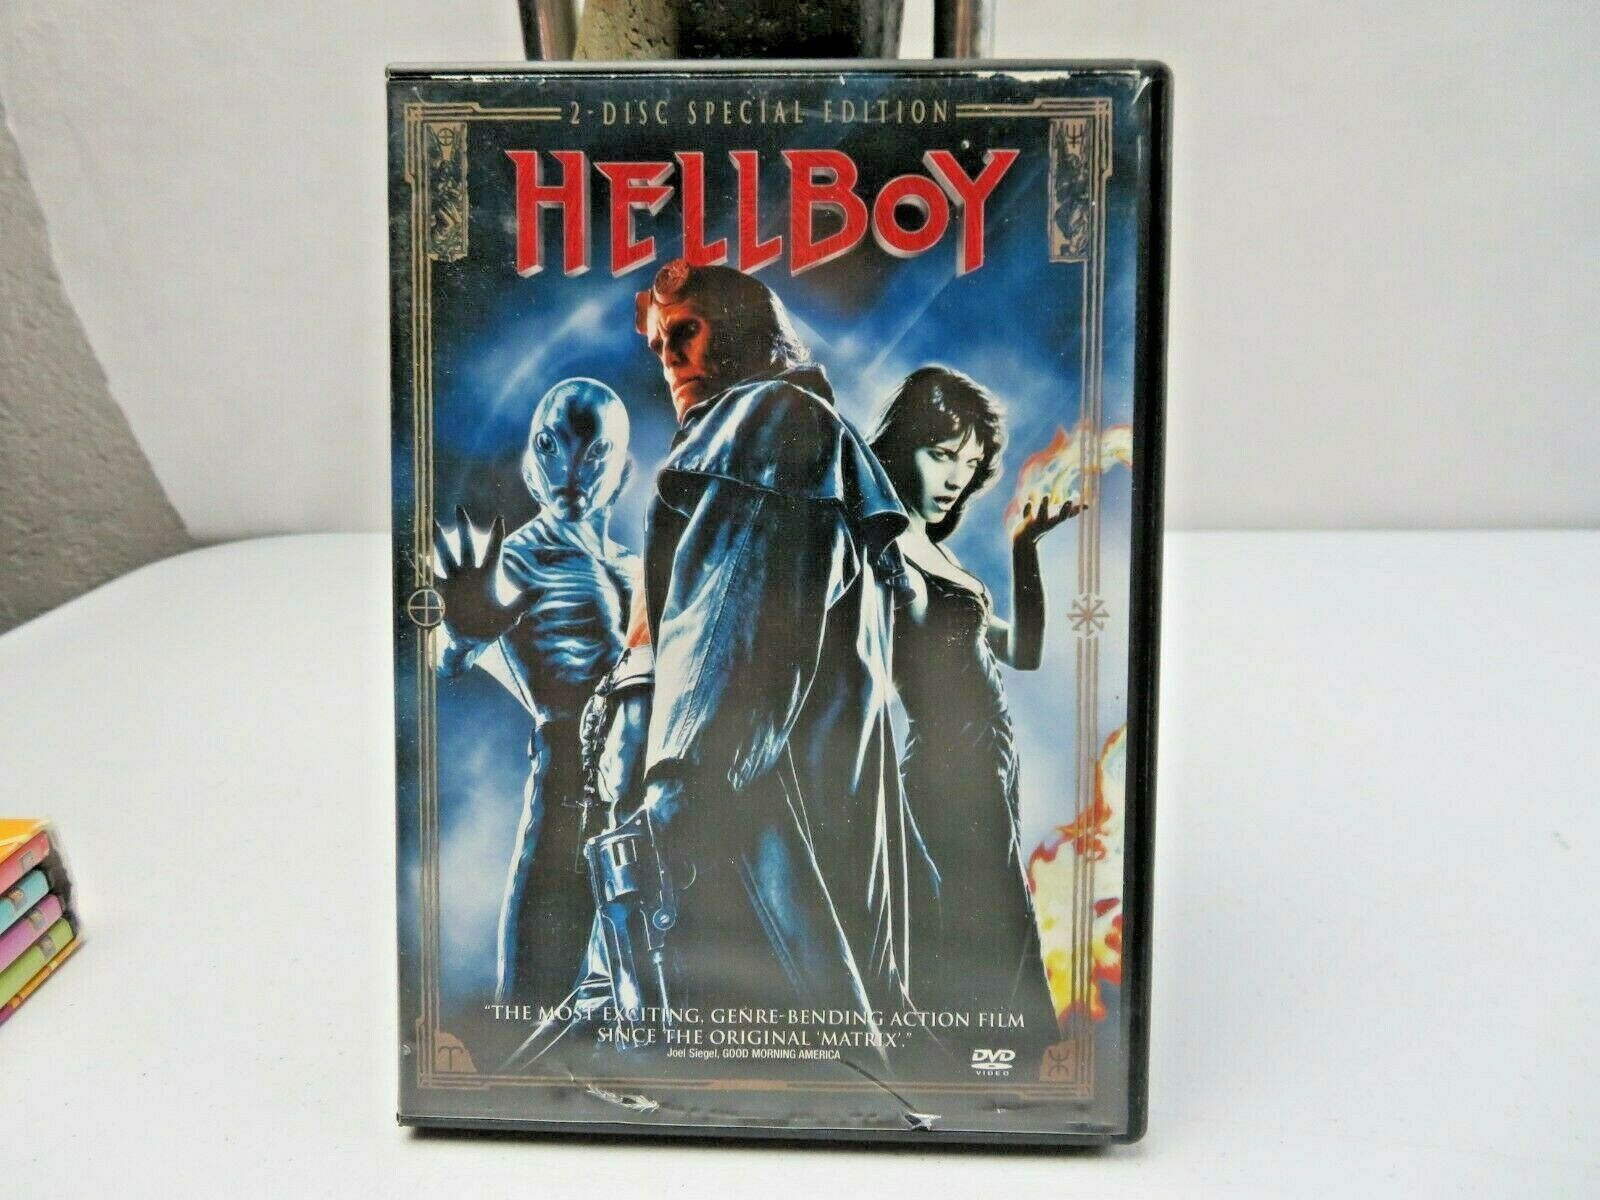 Primary image for HELLBOY 2 DISC SPECIAL EDITION DVD movie